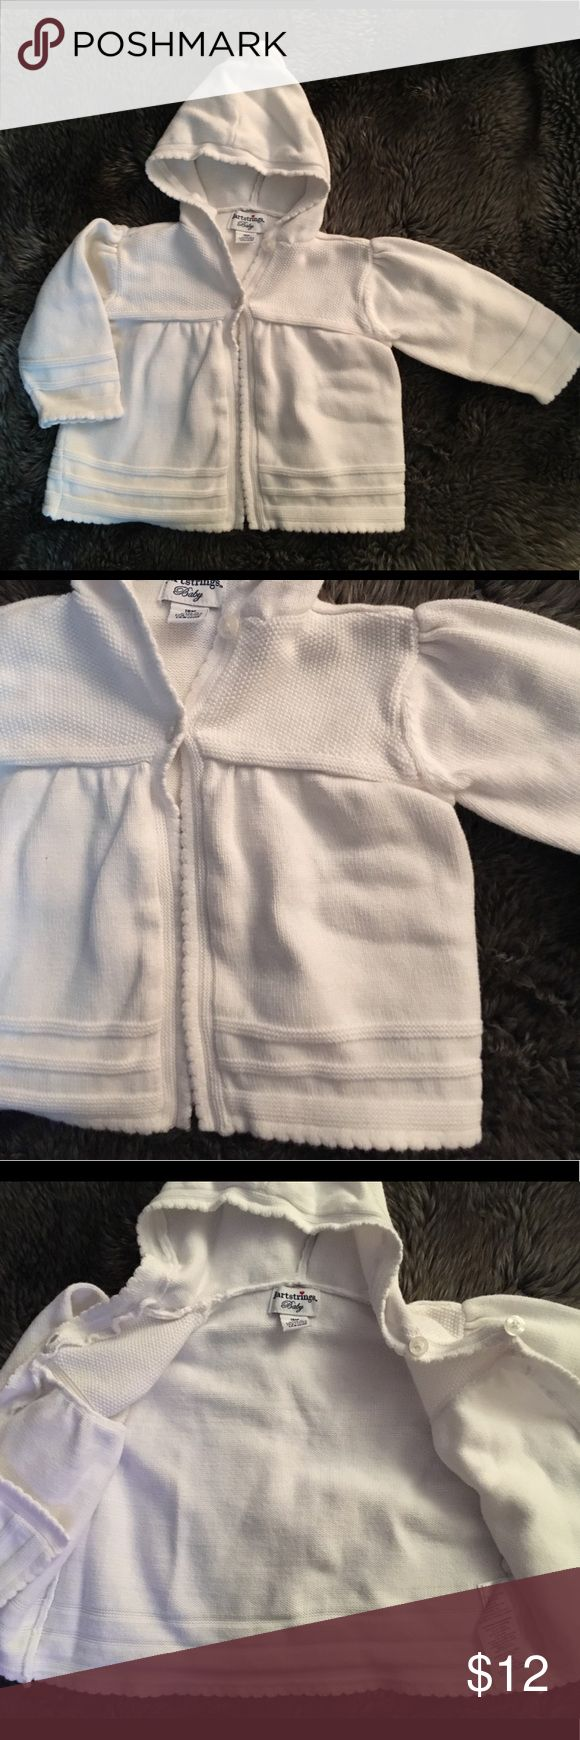 Heartstring baby girl knit sweater 18mo Heartstring baby girl knit sweater size 18 months. White in color. Hood and two buttons at front. Slight scalloped edge and detailing throughout. Maybe worn once if at all. Heartstring Shirts & Tops Sweaters #babygirlsweaters